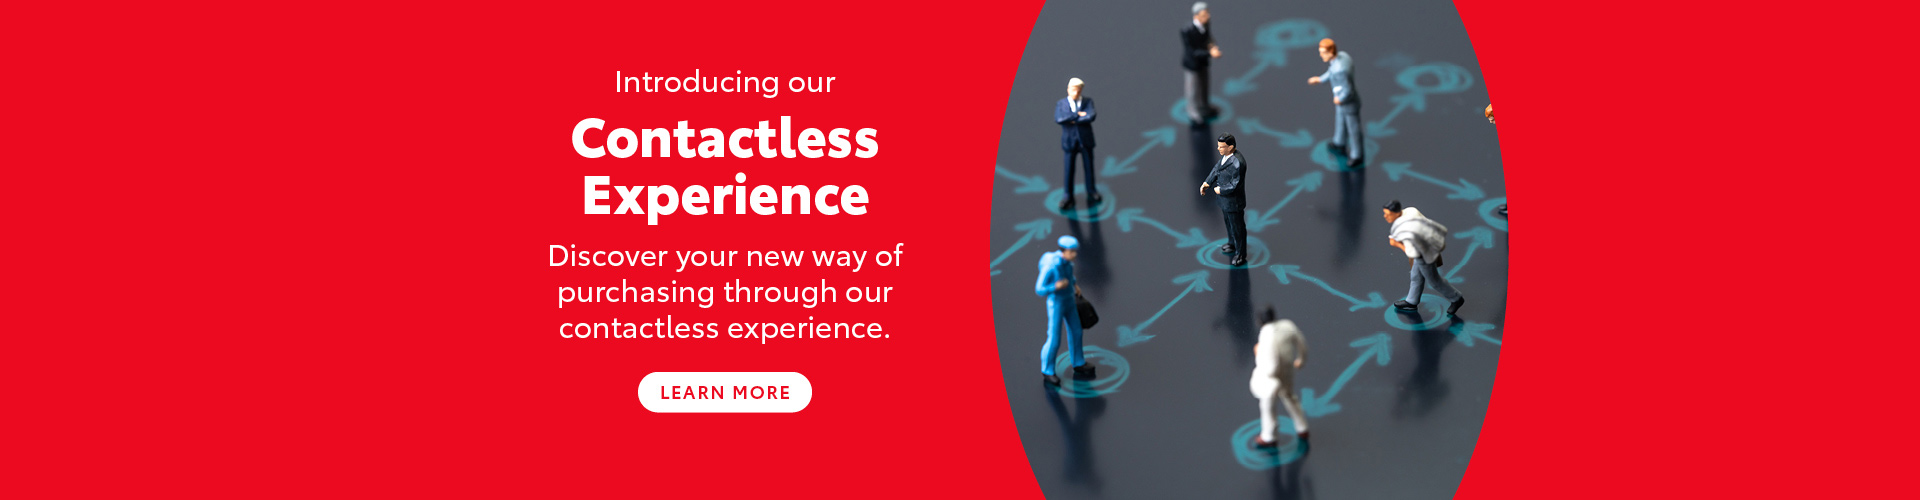 Yarra Valley Toyota - Contactless Experience